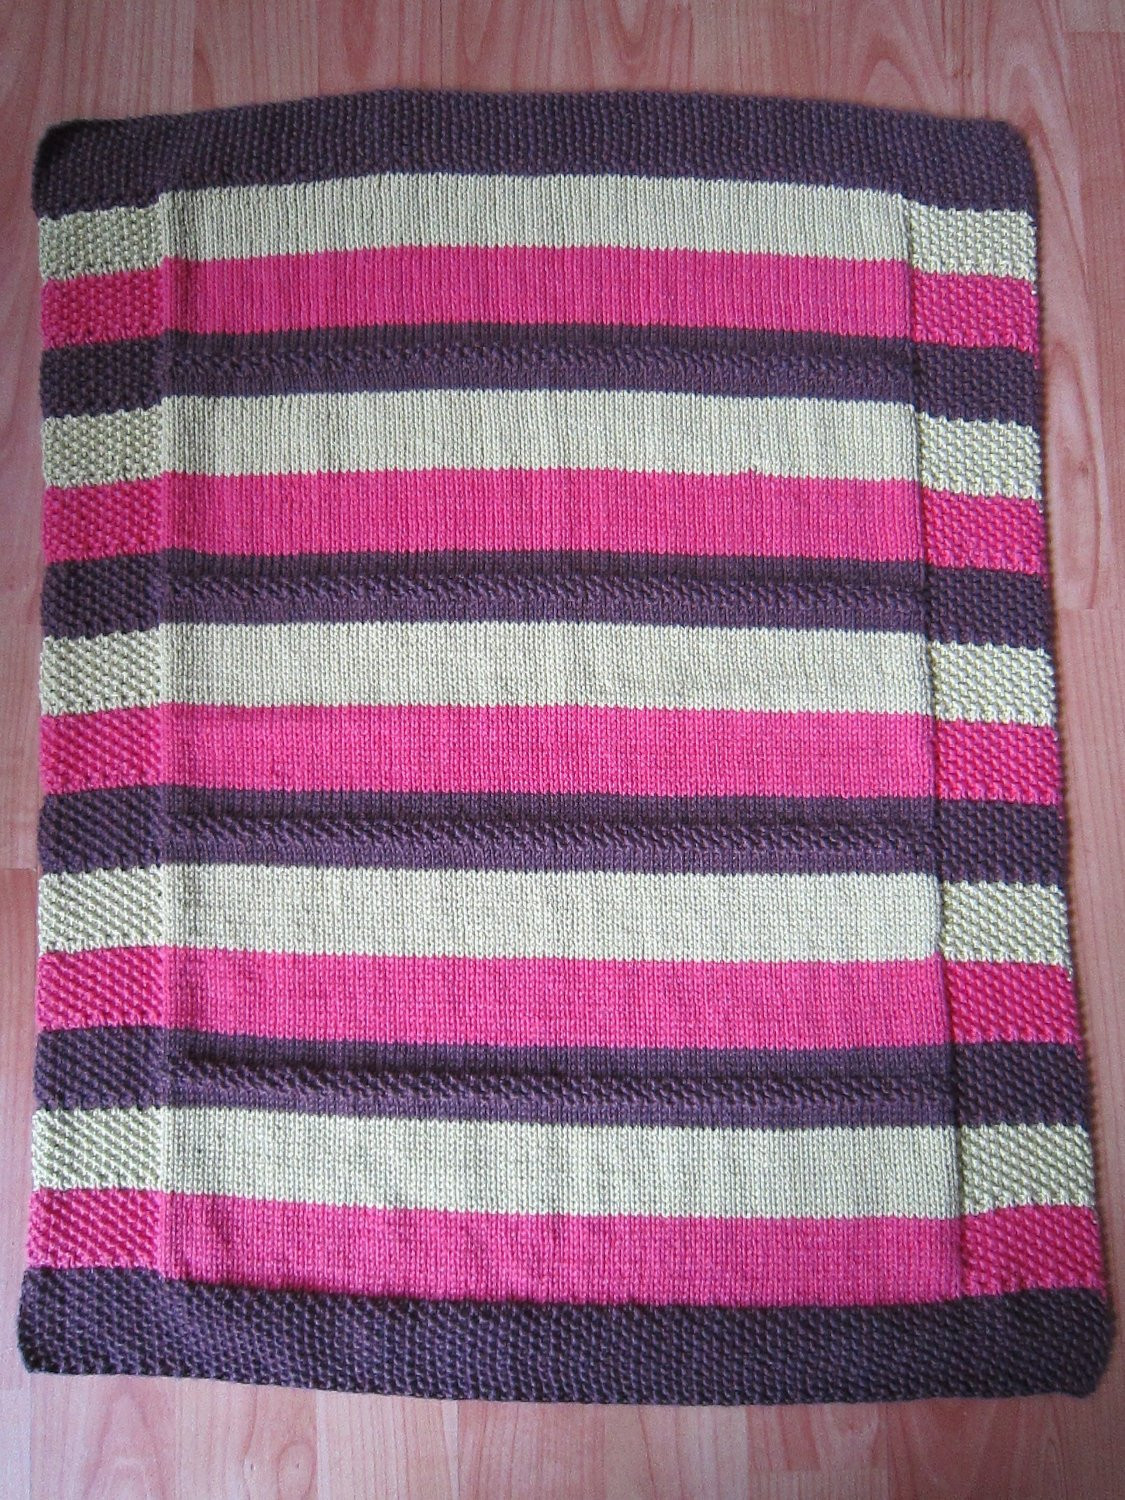 Lovely Hand Knitted Striped Wool and Cotton Baby Blanket Carseat Cotton Knit Baby Blanket Of Awesome 41 Models Cotton Knit Baby Blanket